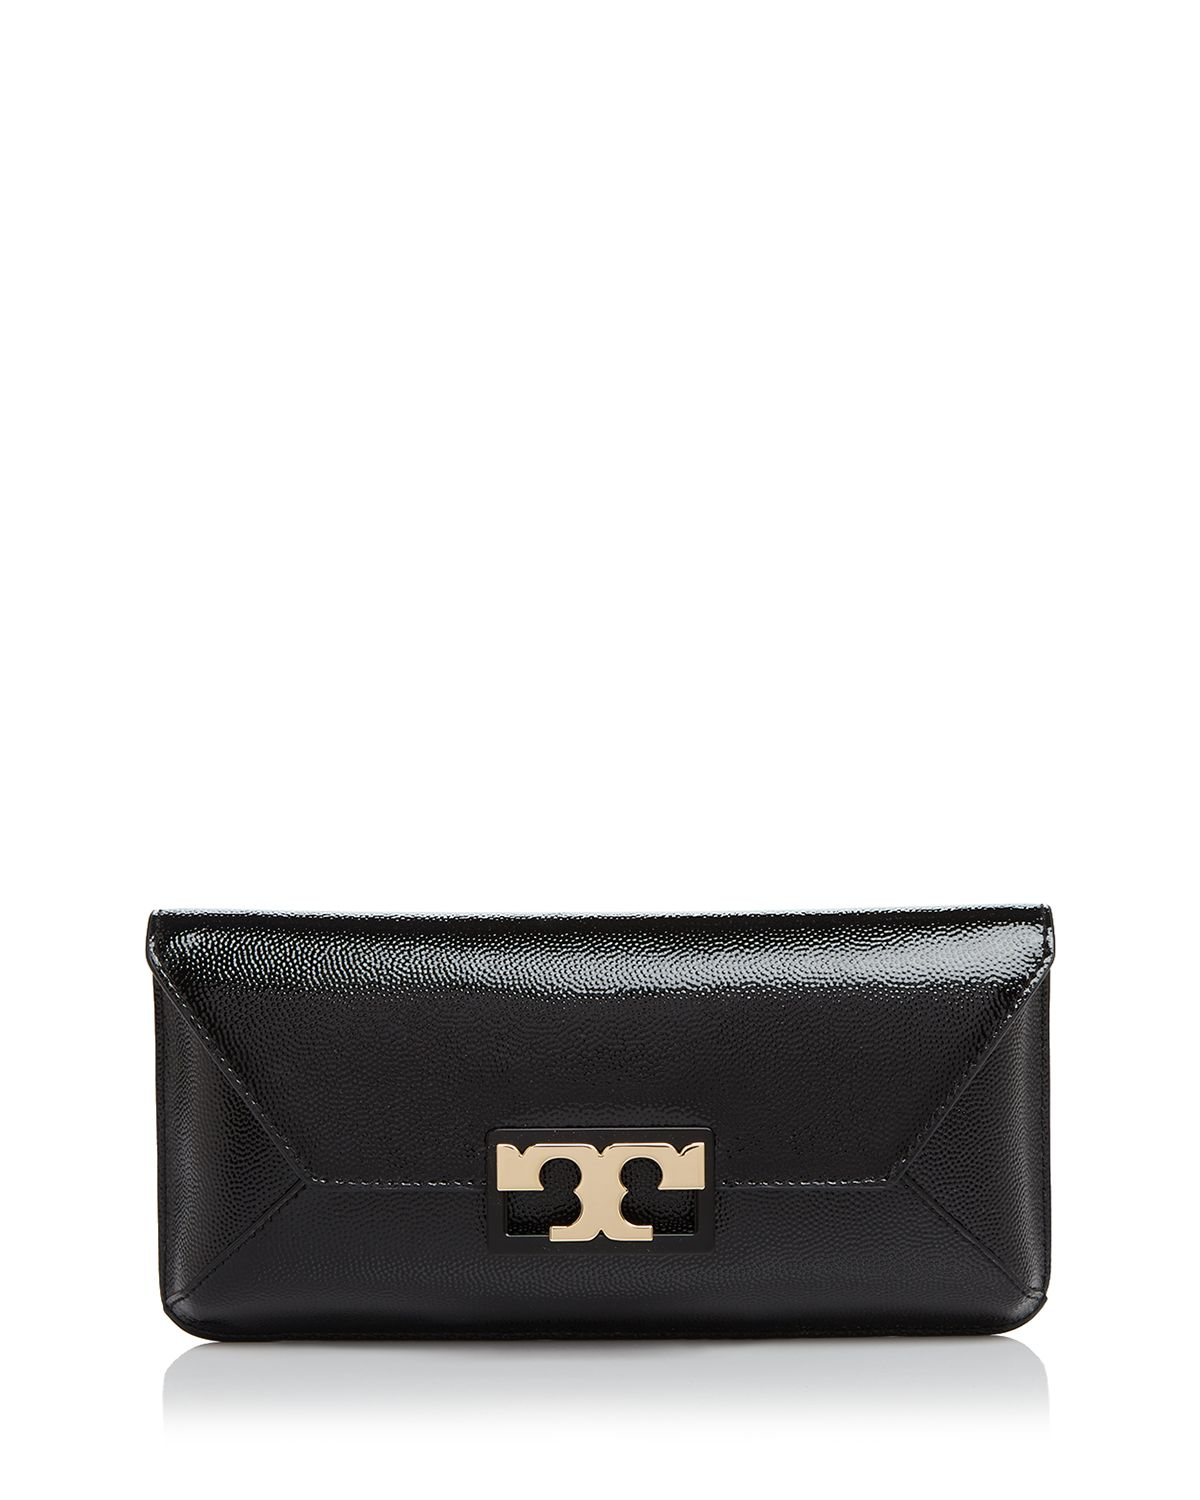 Tory Burch Gigi Patent Clutch $258 (Bloomingdales)